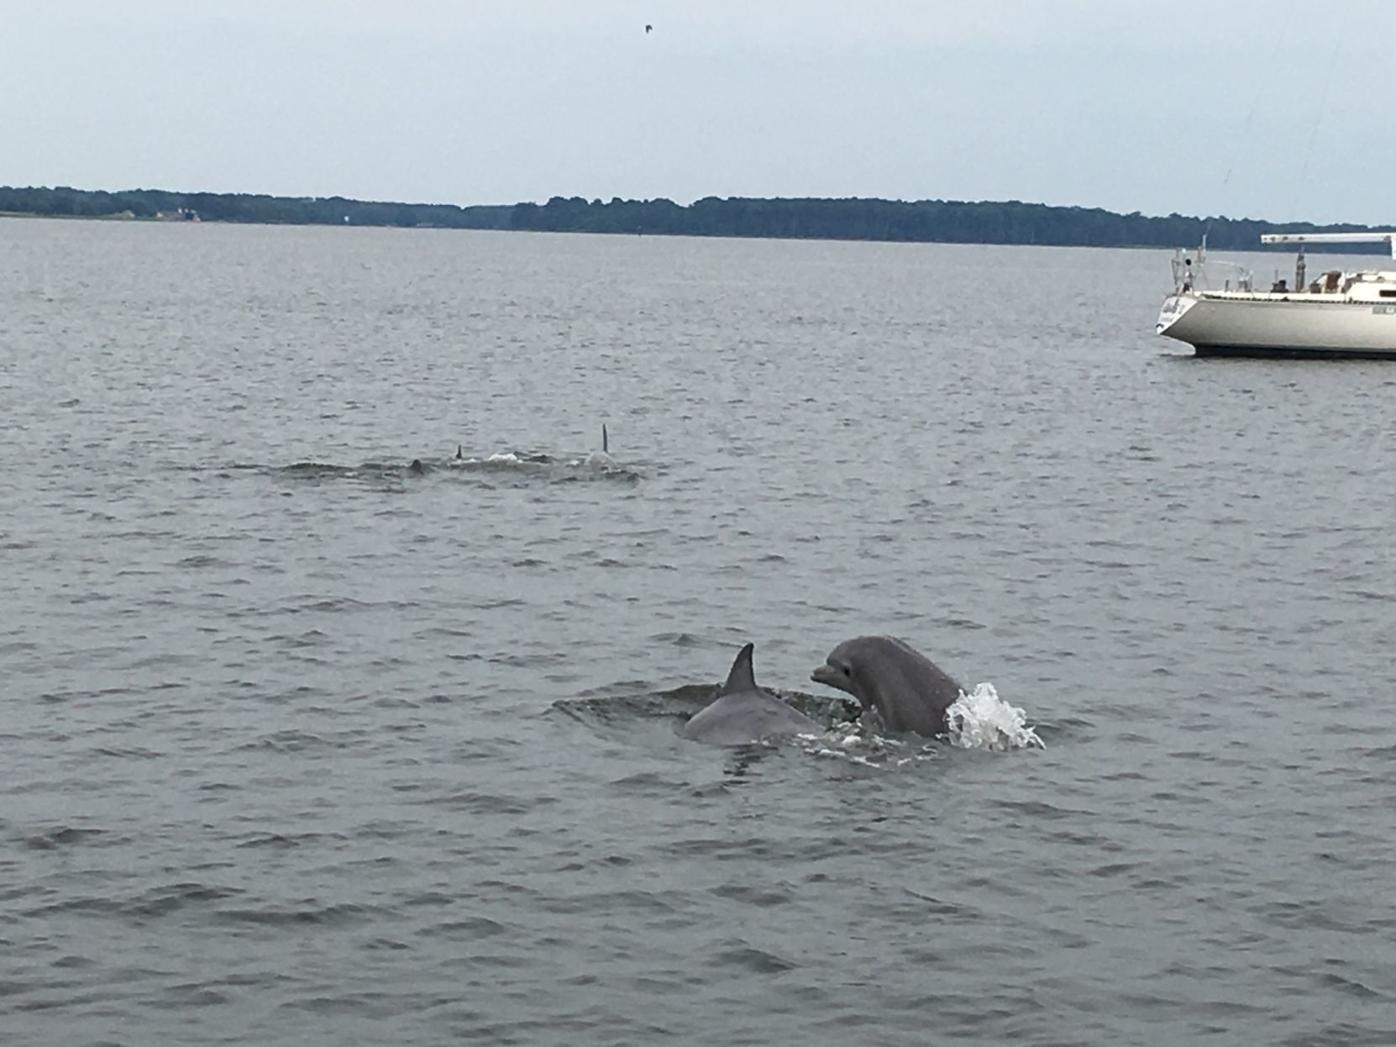 Dolphins return to the Bay